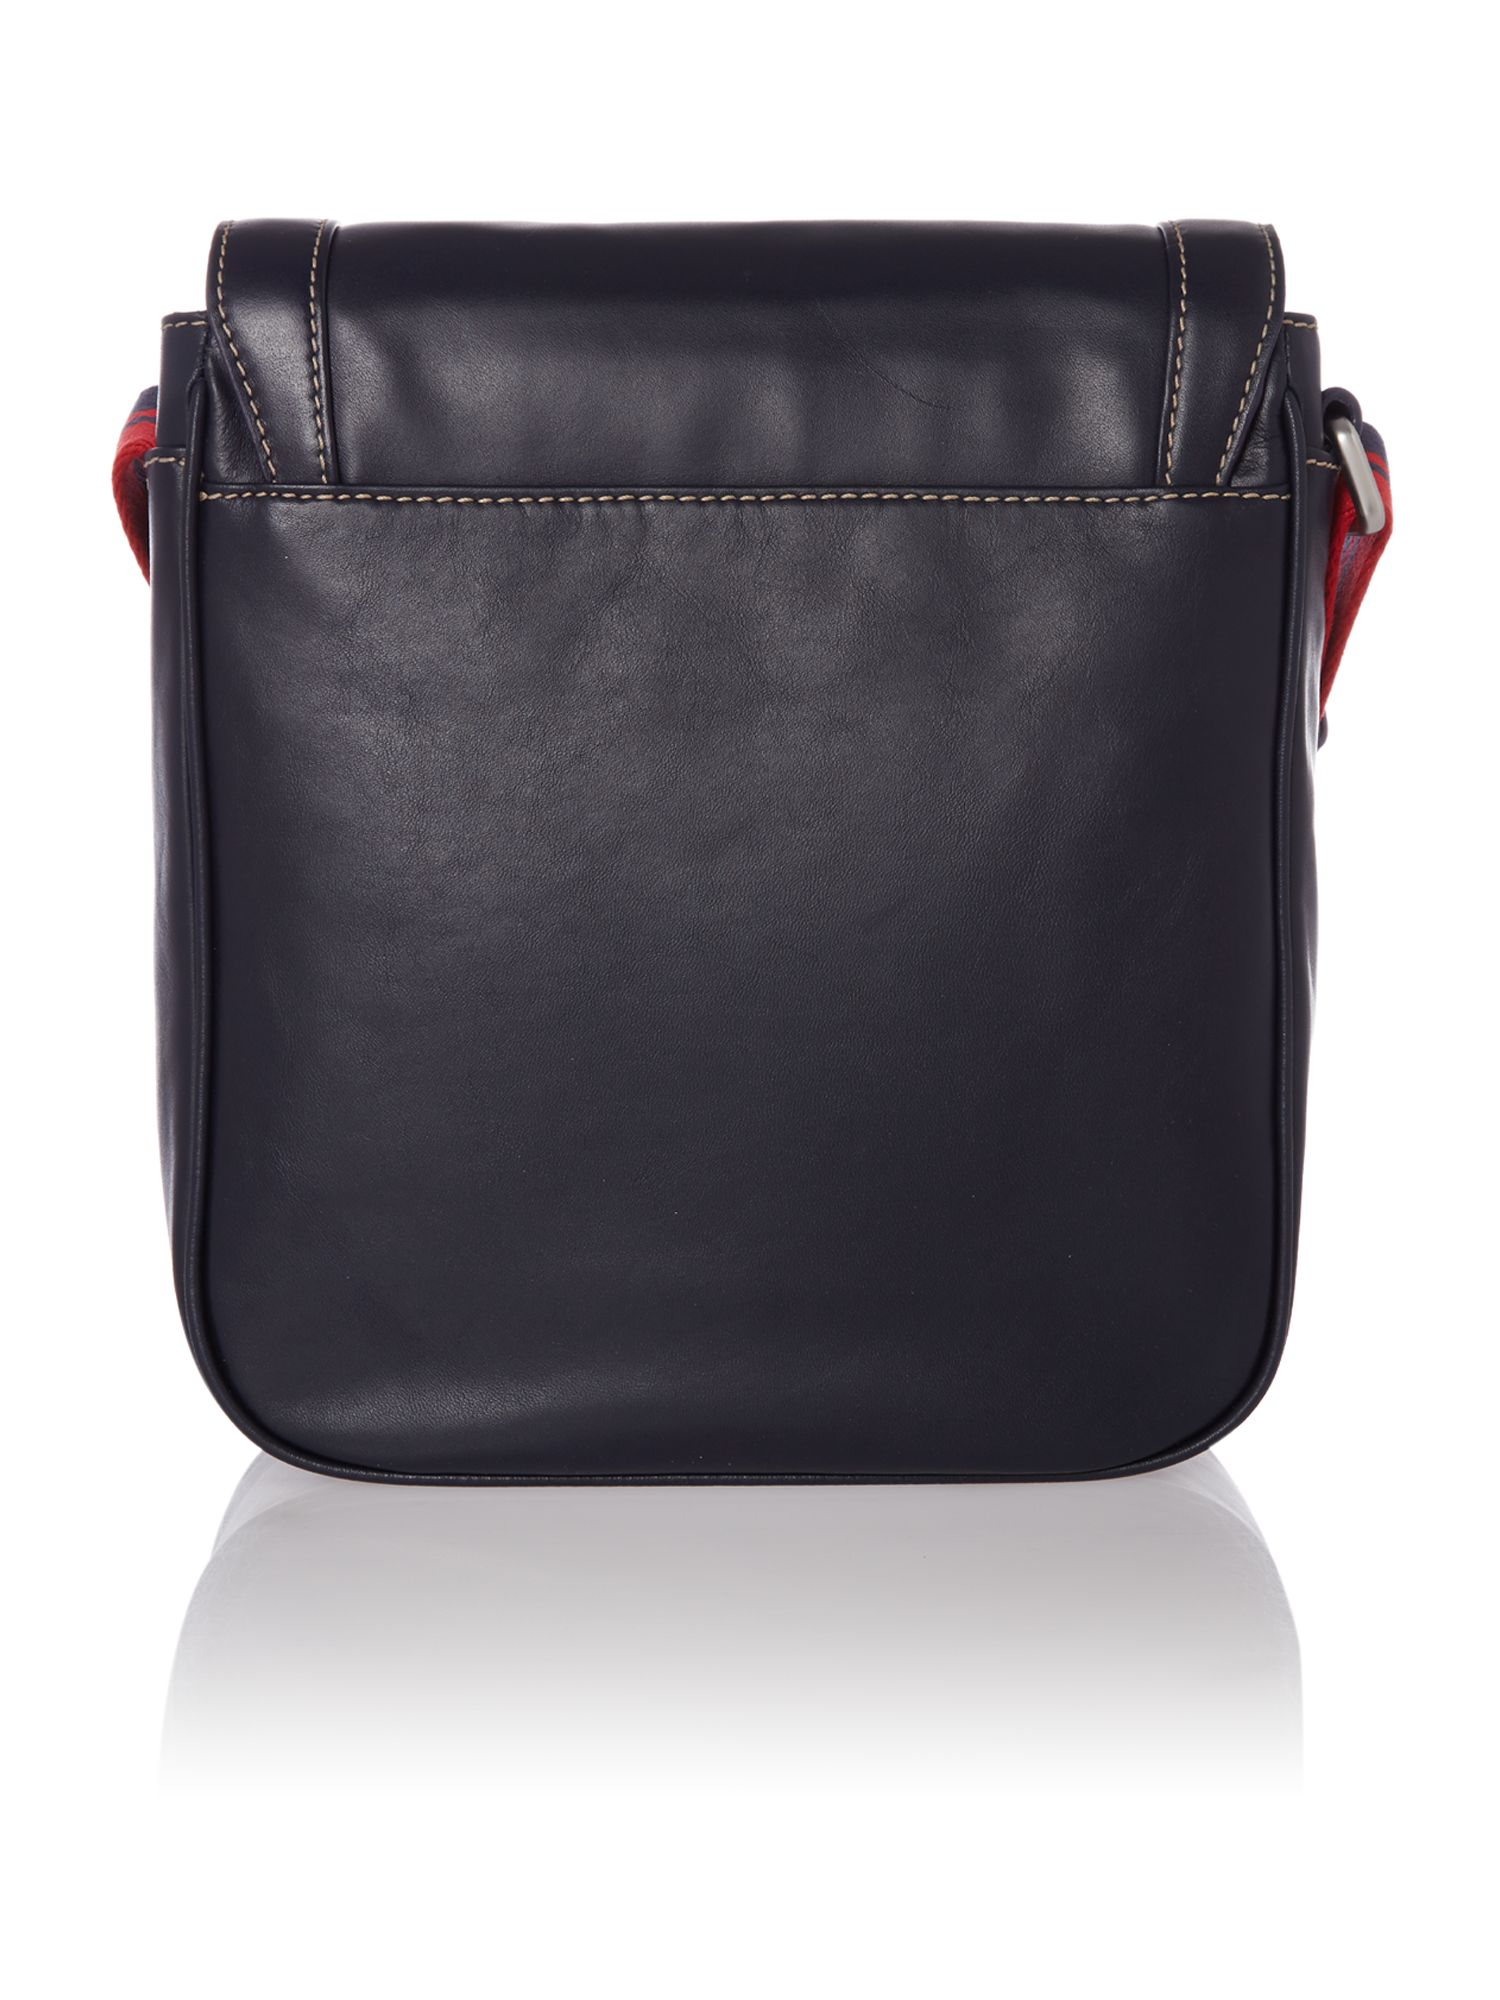 Djamena small cross body bag